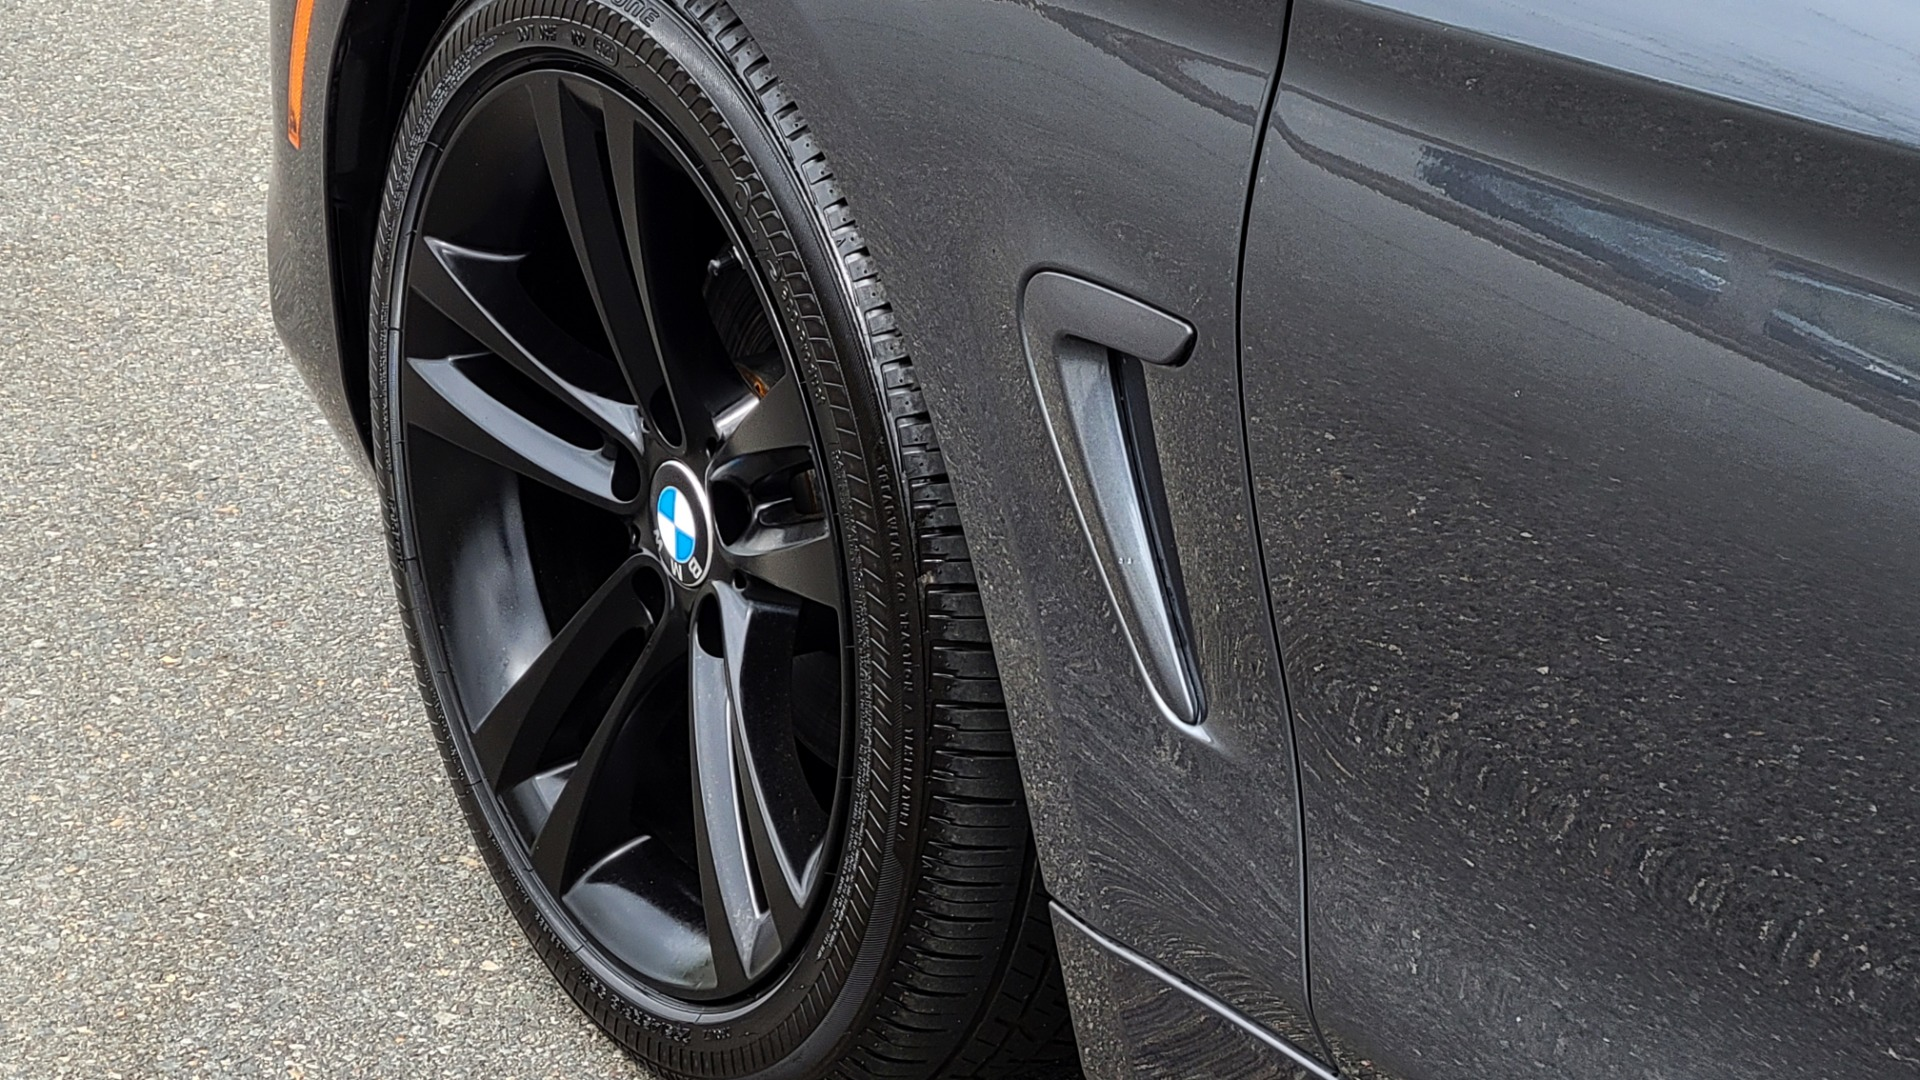 Used 2019 BMW 4 SERIES 430I COUPE 2.0L / RWD / DRVR ASST / CONV PKG / SUNROOF / REARVIEW for sale $32,295 at Formula Imports in Charlotte NC 28227 6